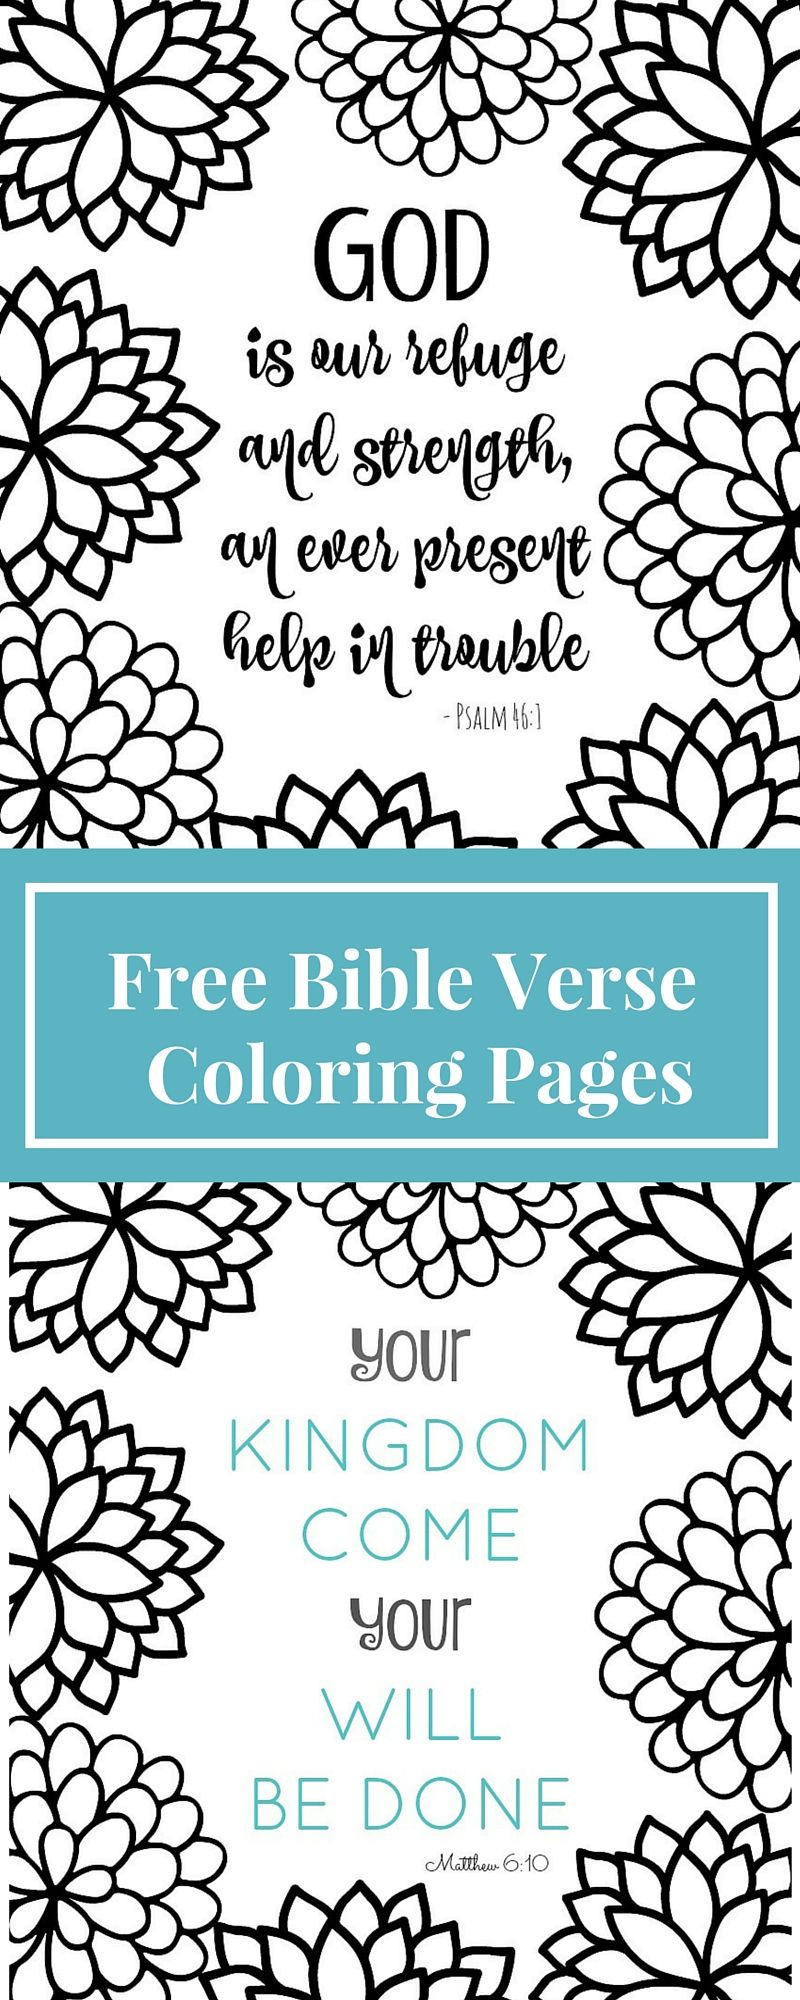 Thanksgiving coloring pages with bible verses - Coloring Pages Are For Grown Ups Now These Bible Verse Coloring Page Printables Are Fun